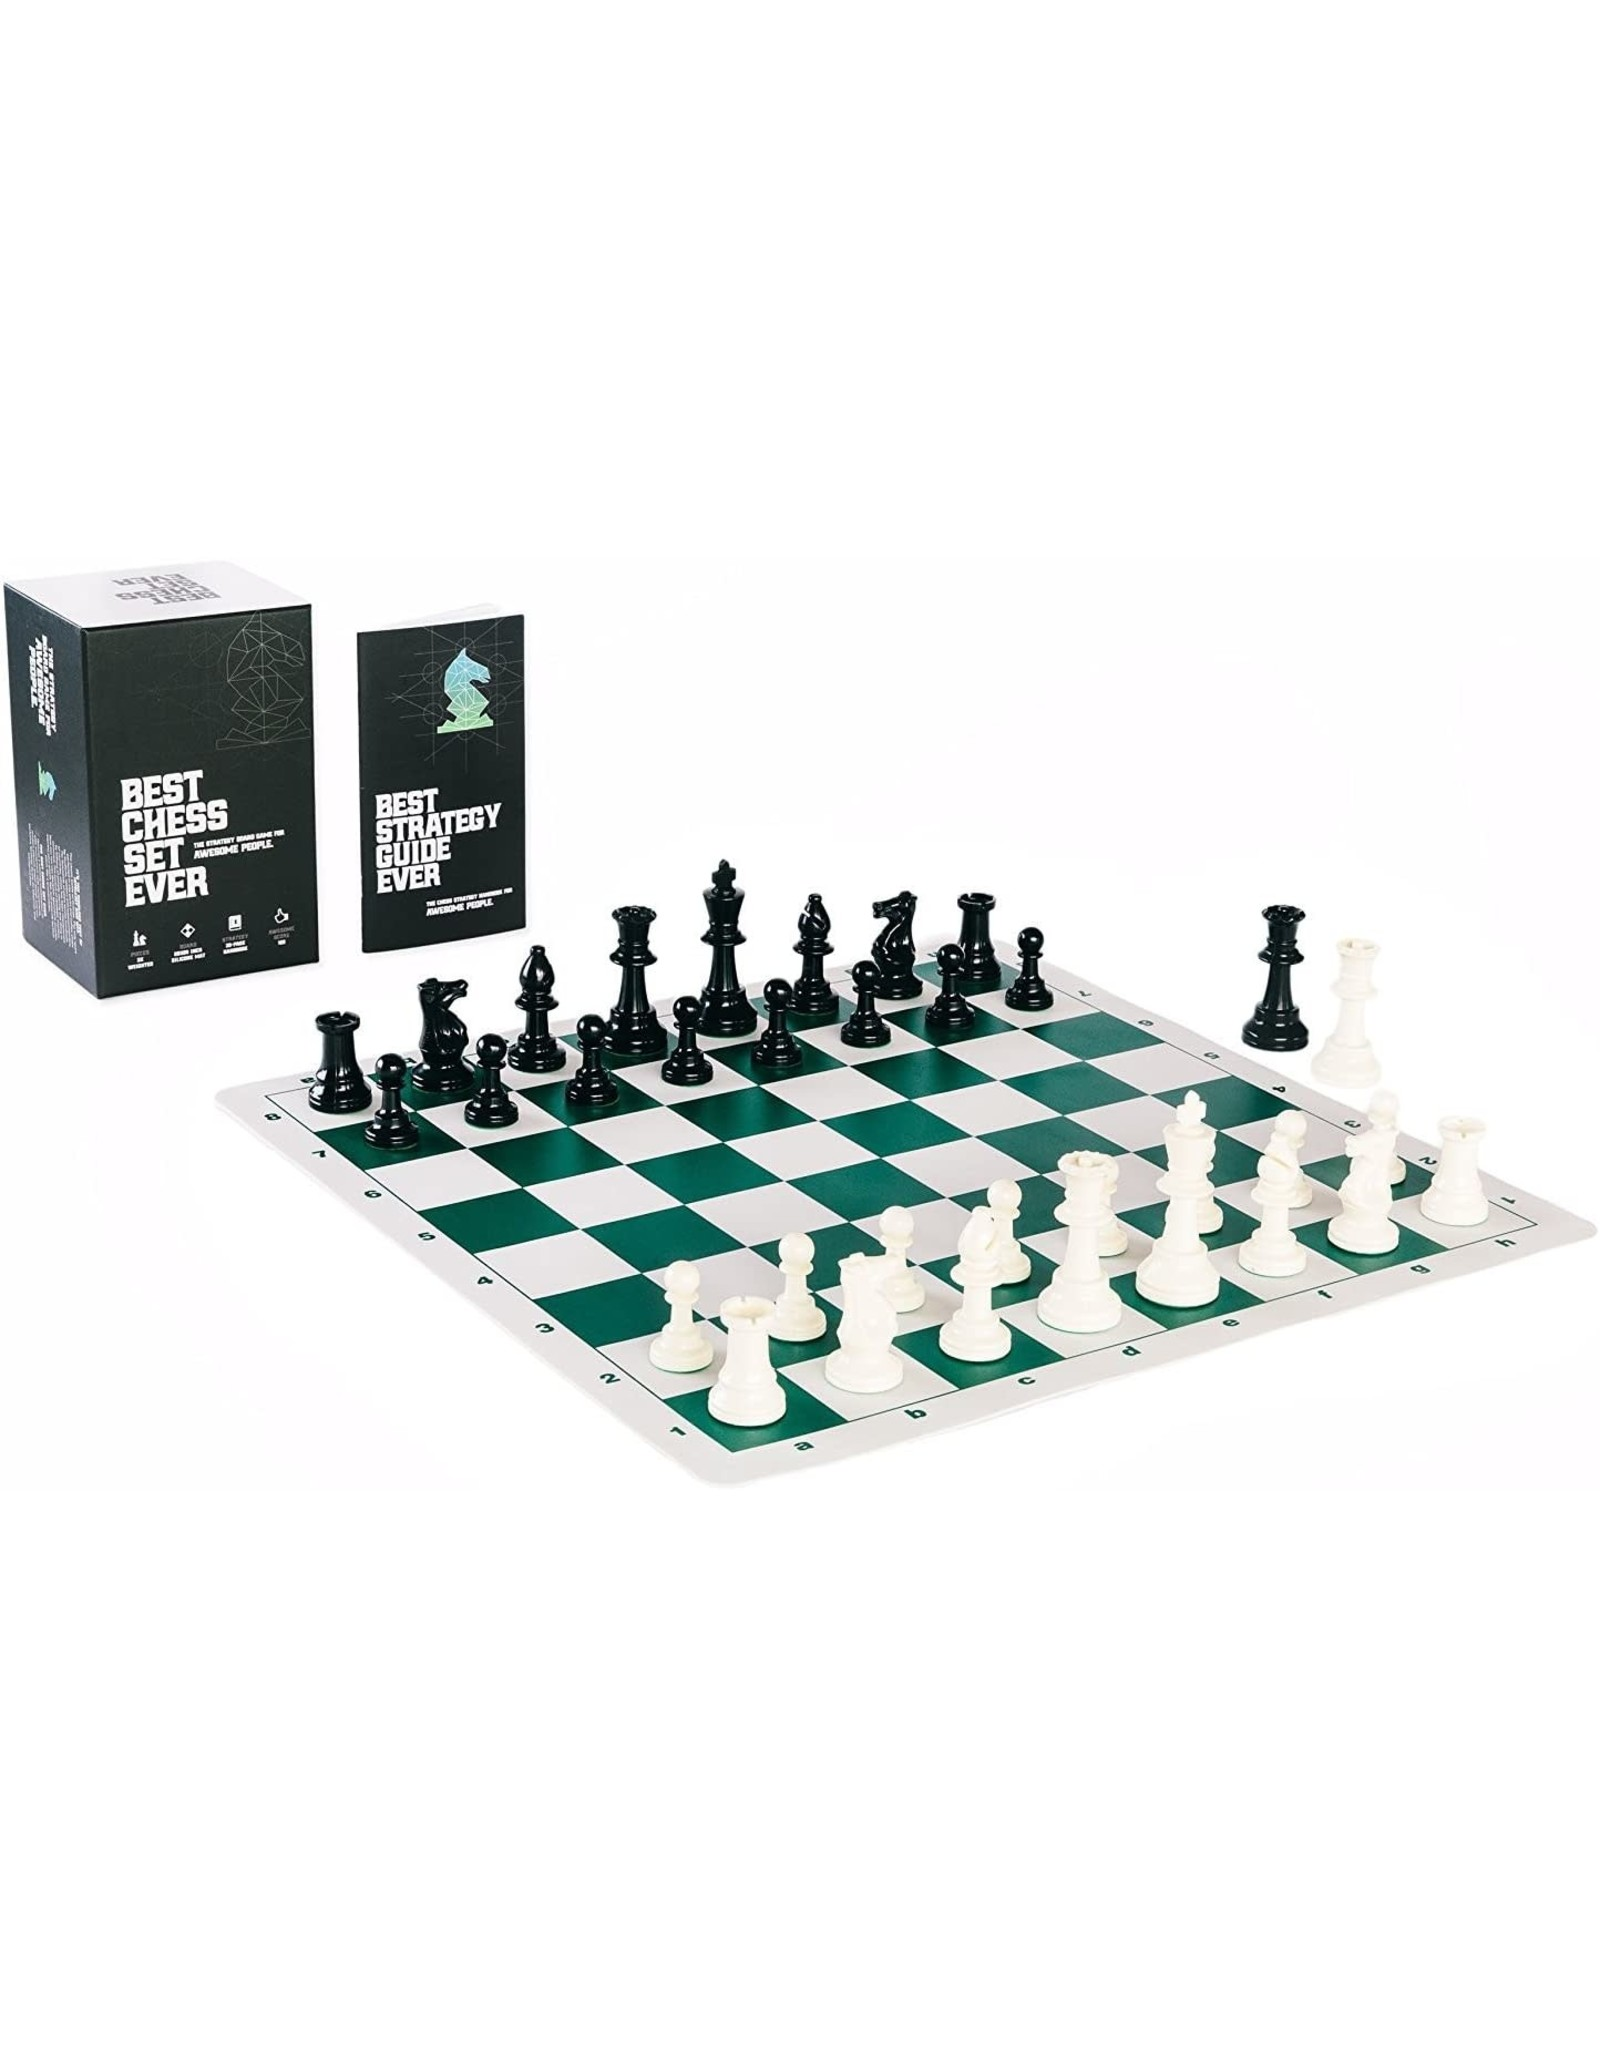 Best Chess Set Ever Board Game